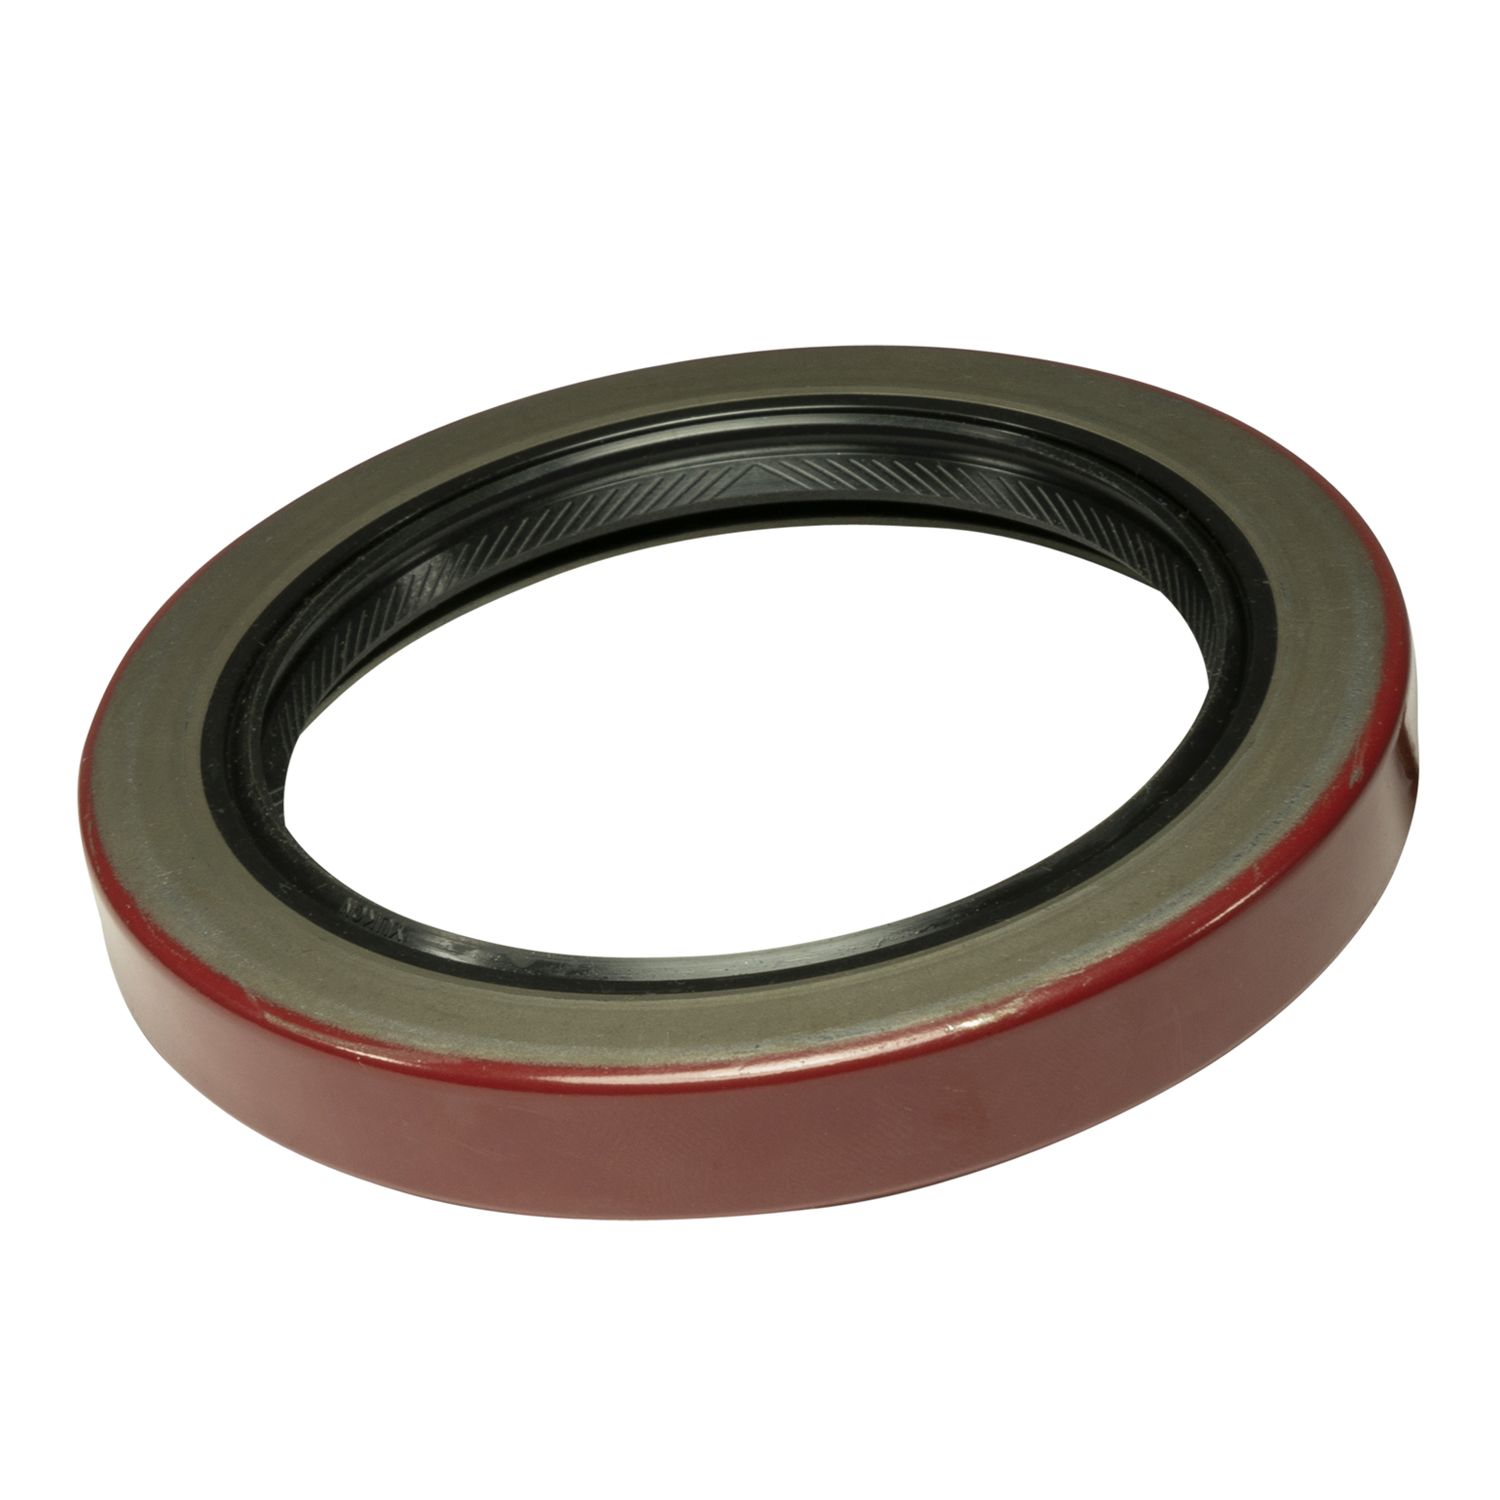 YMS2081 - Full-floating axle seal for GM 14T.